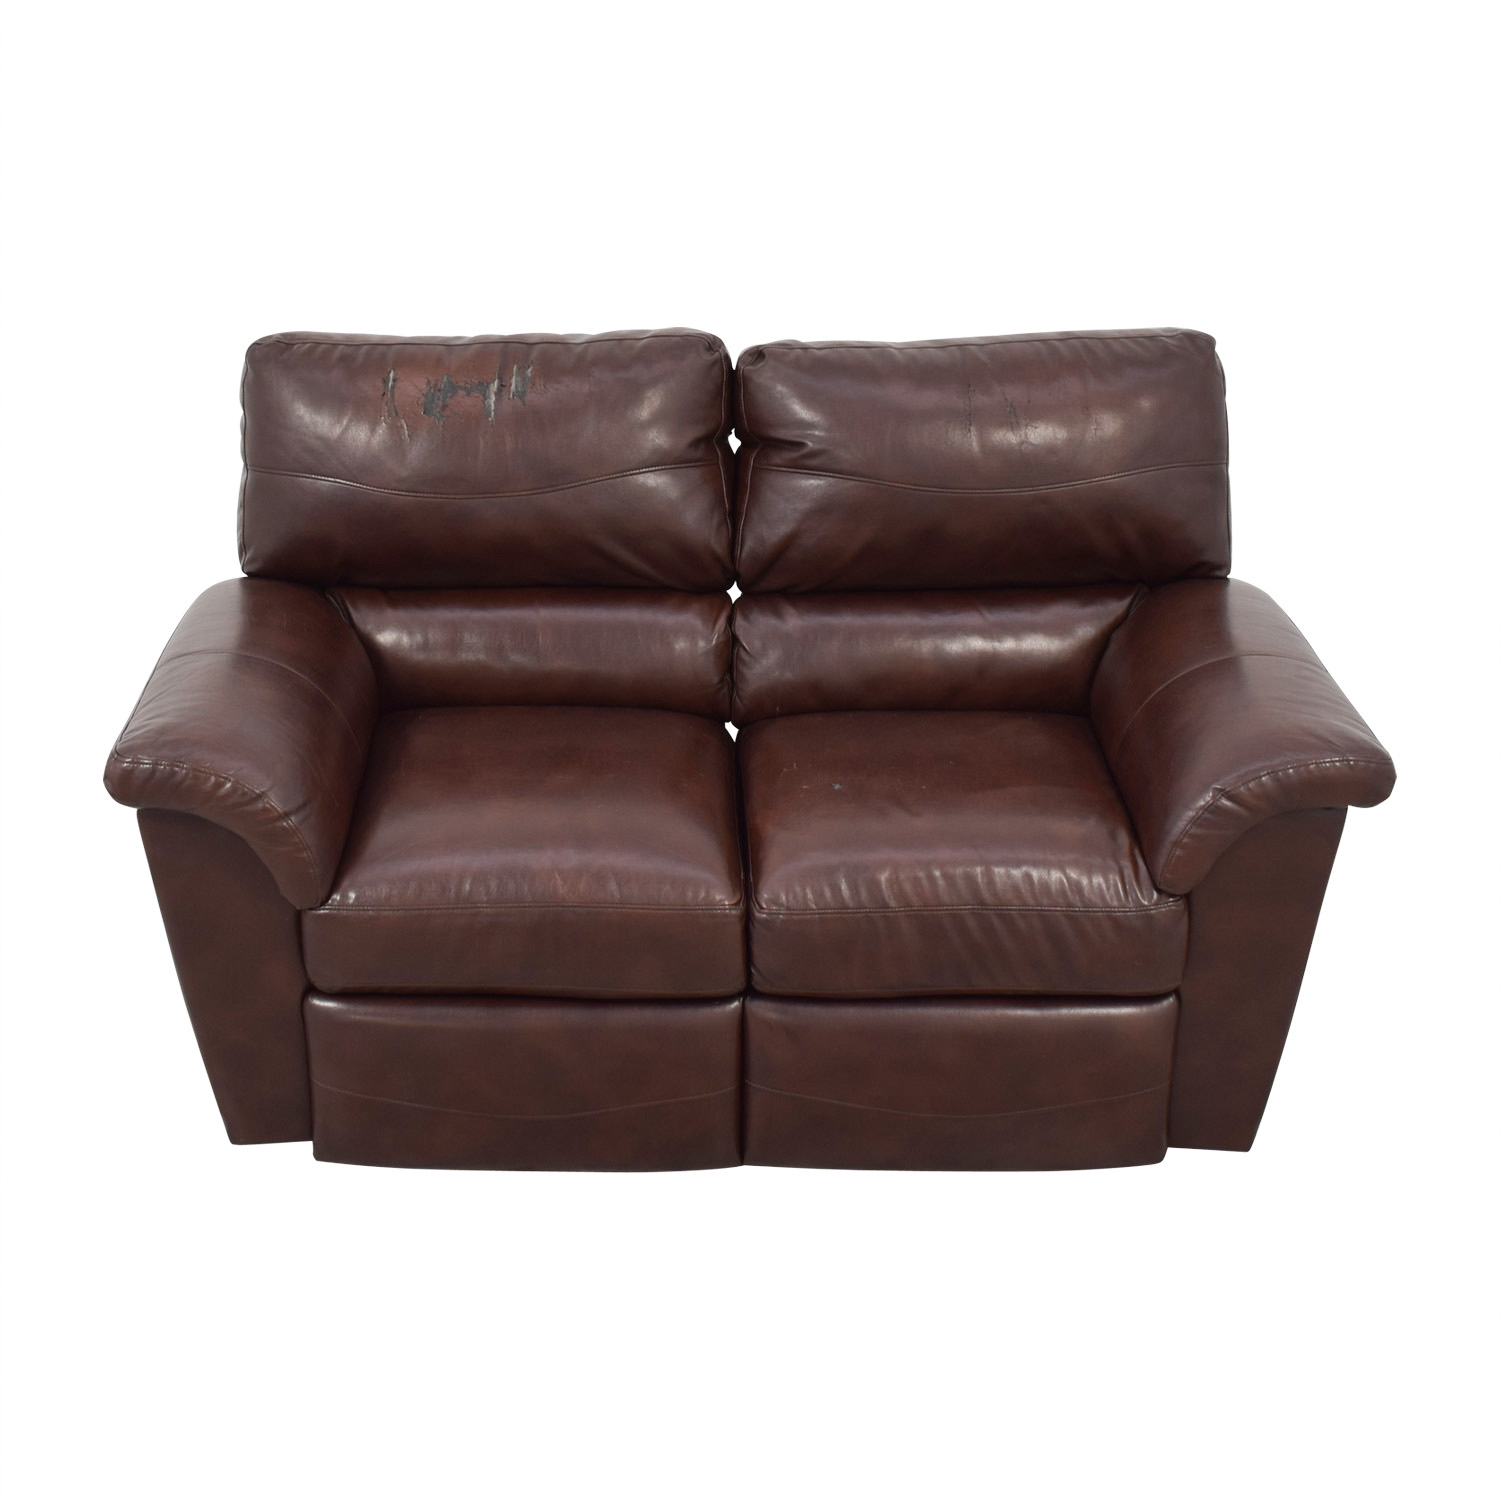 La-Z-Boy La-Z-Boy Oscar Reclining Loveseat coupon